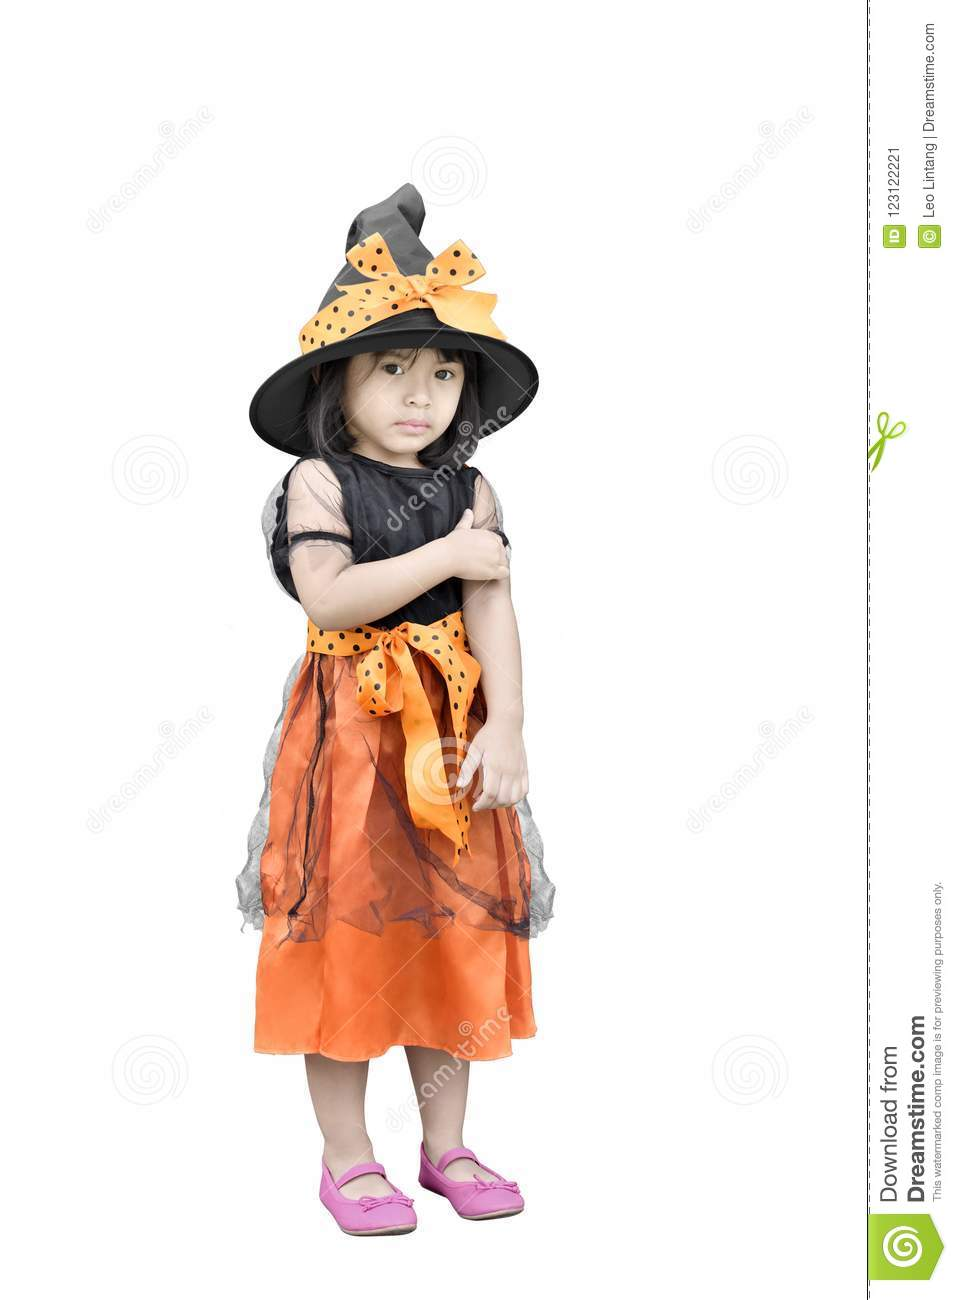 Portrait Of Cute Asian Girl With Witch Costume For Halloween Stock Image Image Of Little Lifestyle 123122221